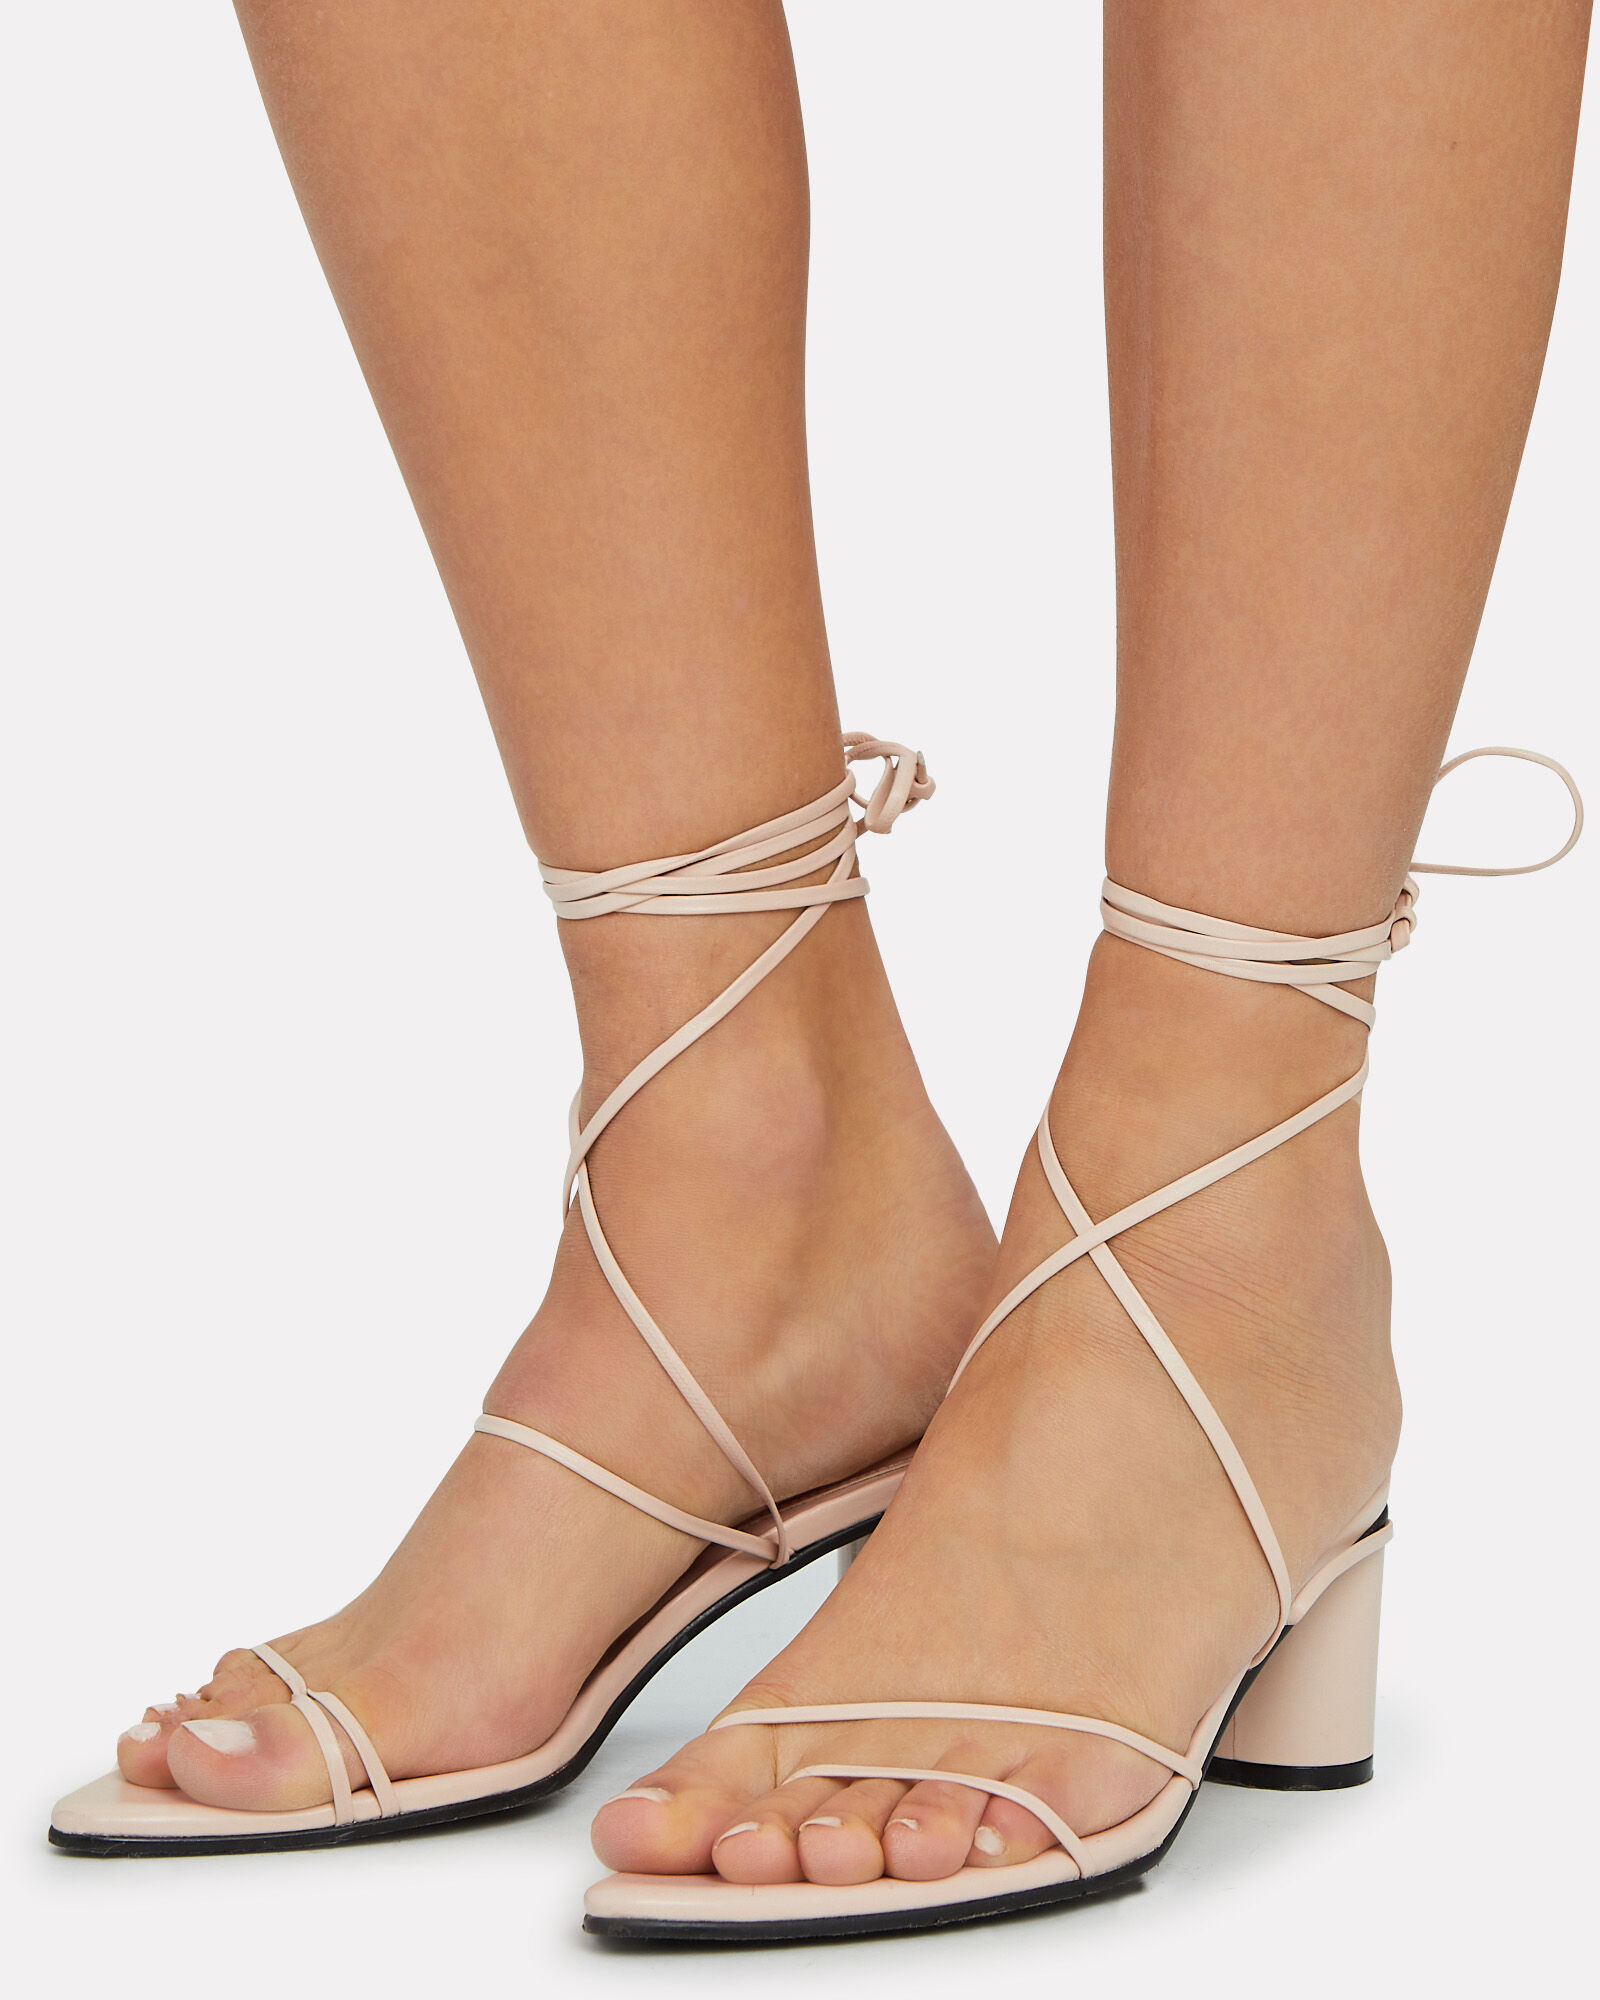 Odd Pair Strappy Sandals, IVORY, hi-res